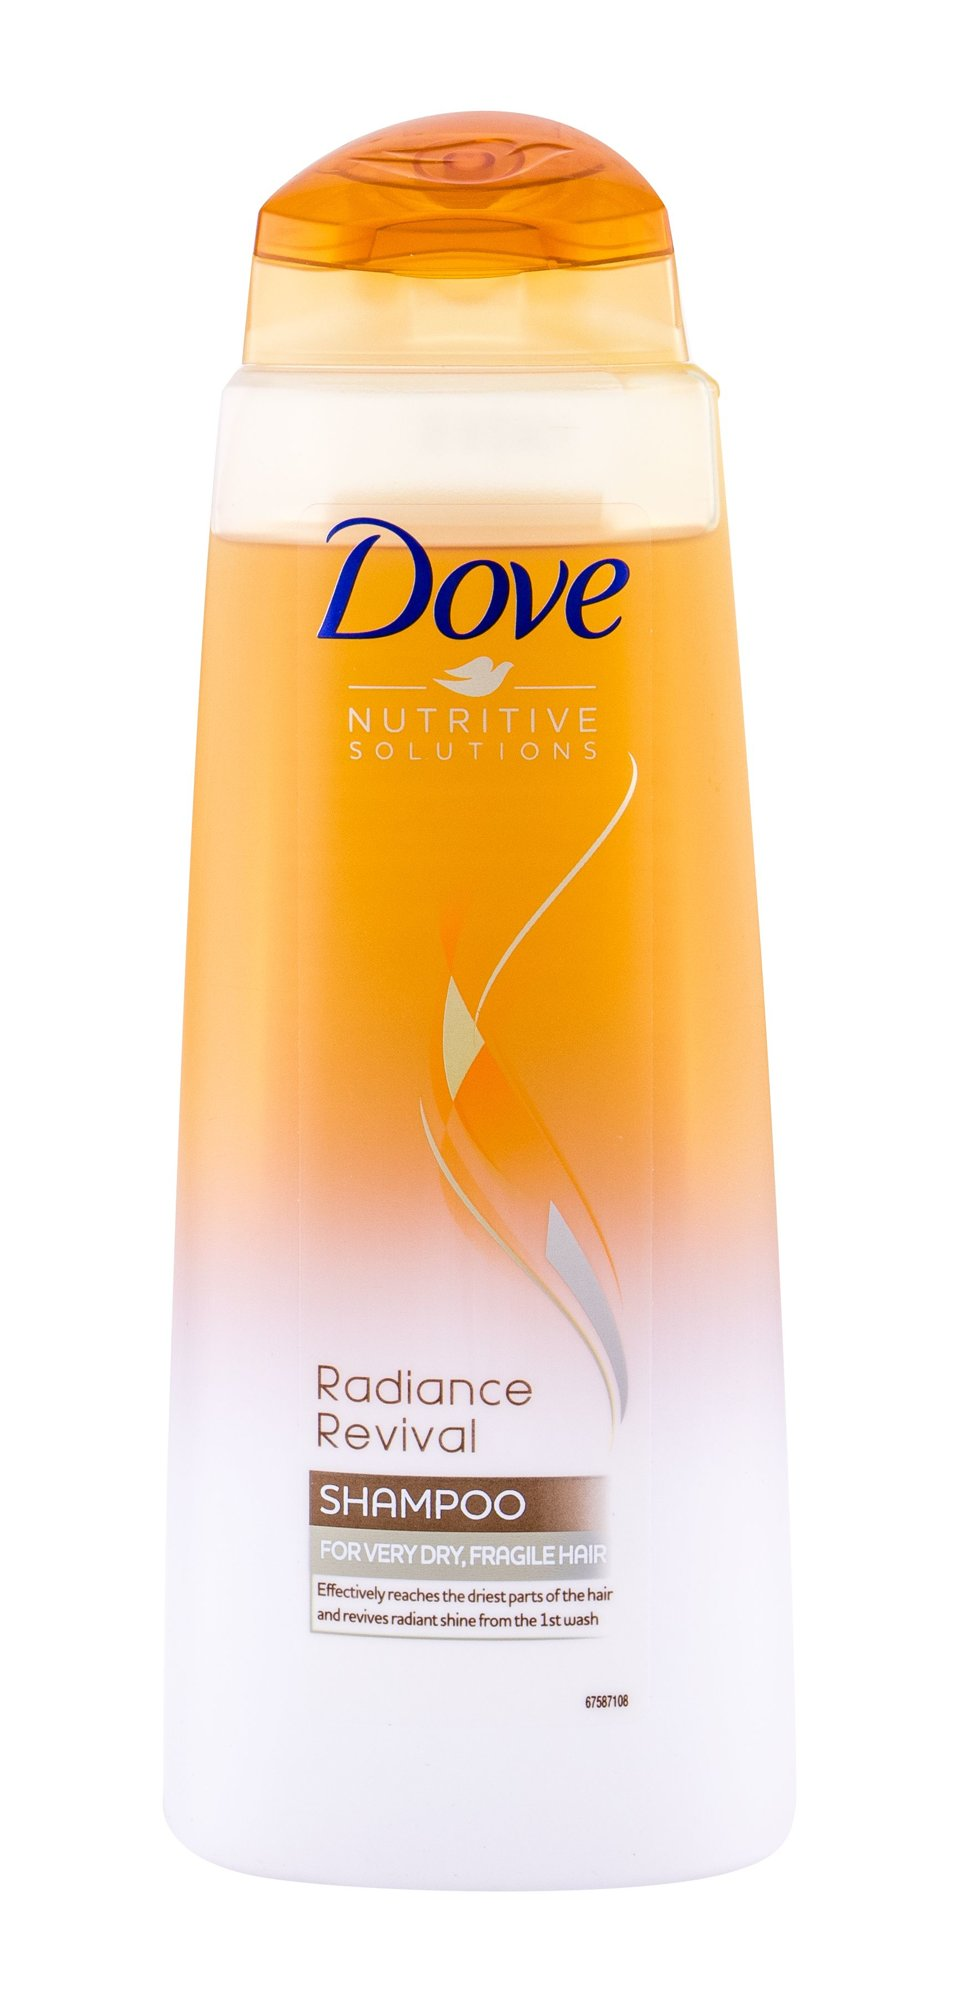 Dove Nutritive Solutions Radiance Revival, Sampon 400ml